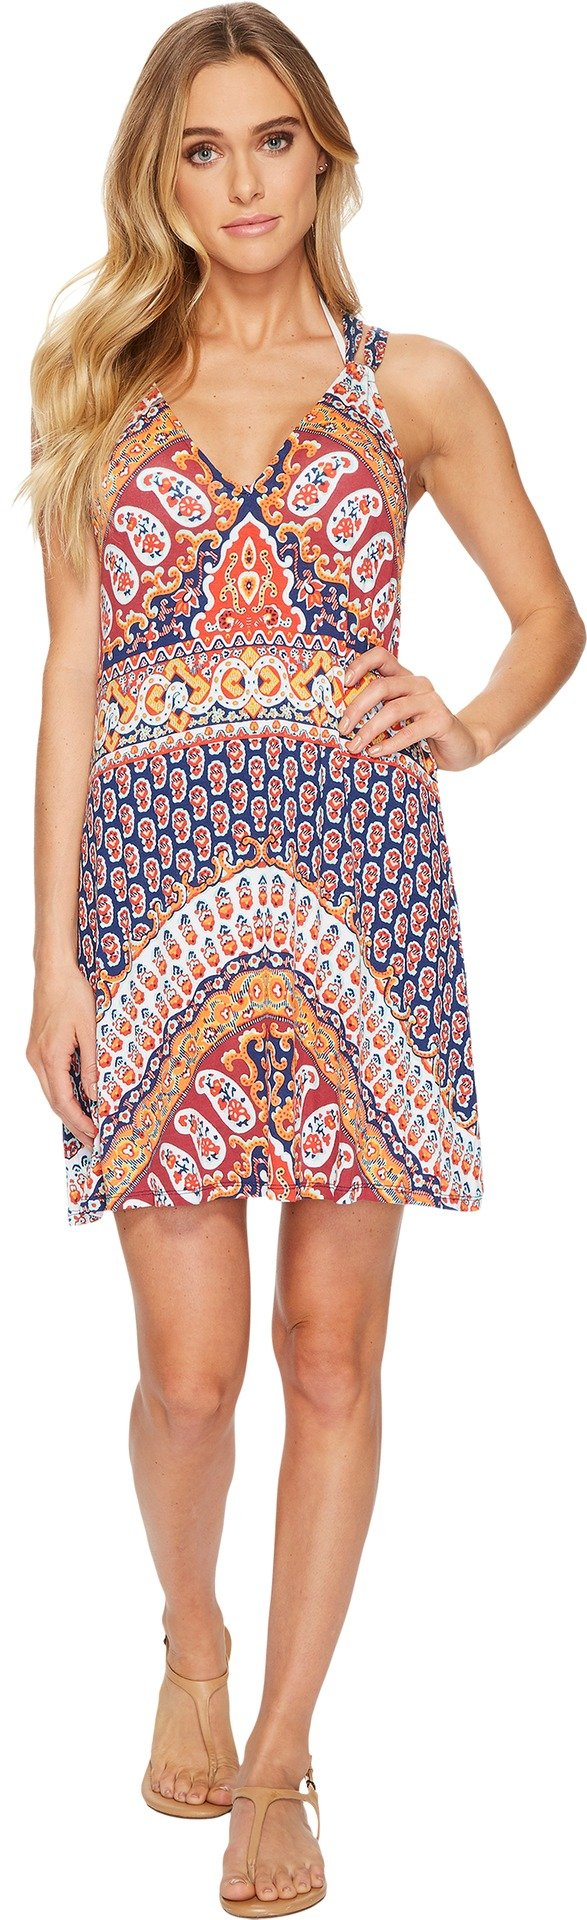 Nanette Lepore Women's Super Fly Paisley Cover Short Dress, Multi, X-Small